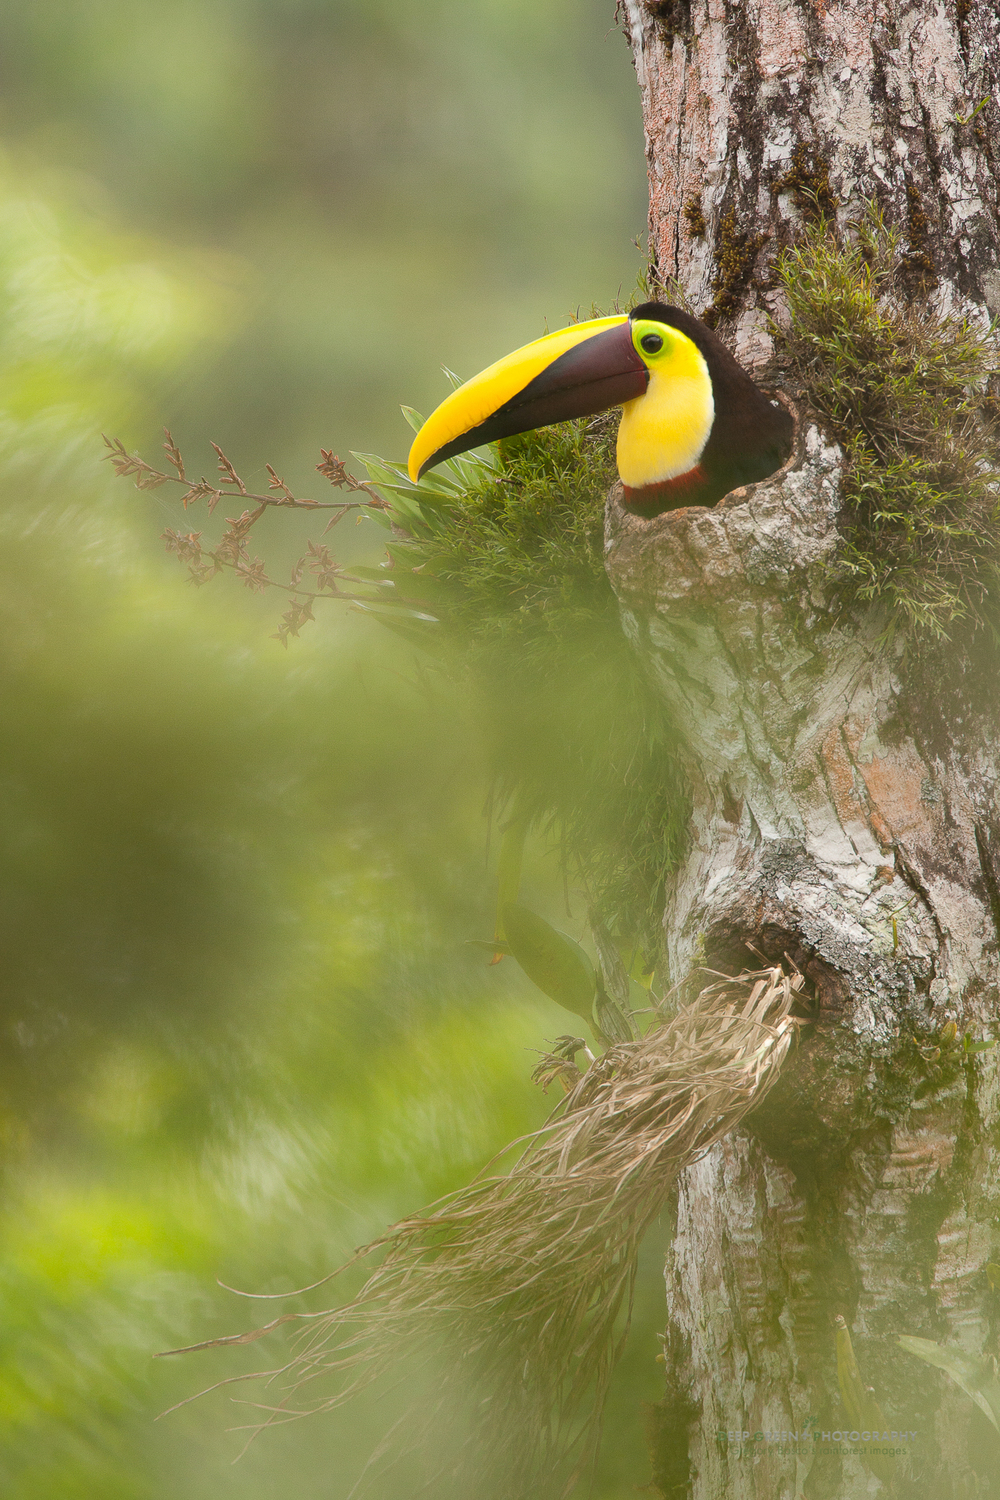 chestnut-mandible toucan on nest in hole of rainforest tree